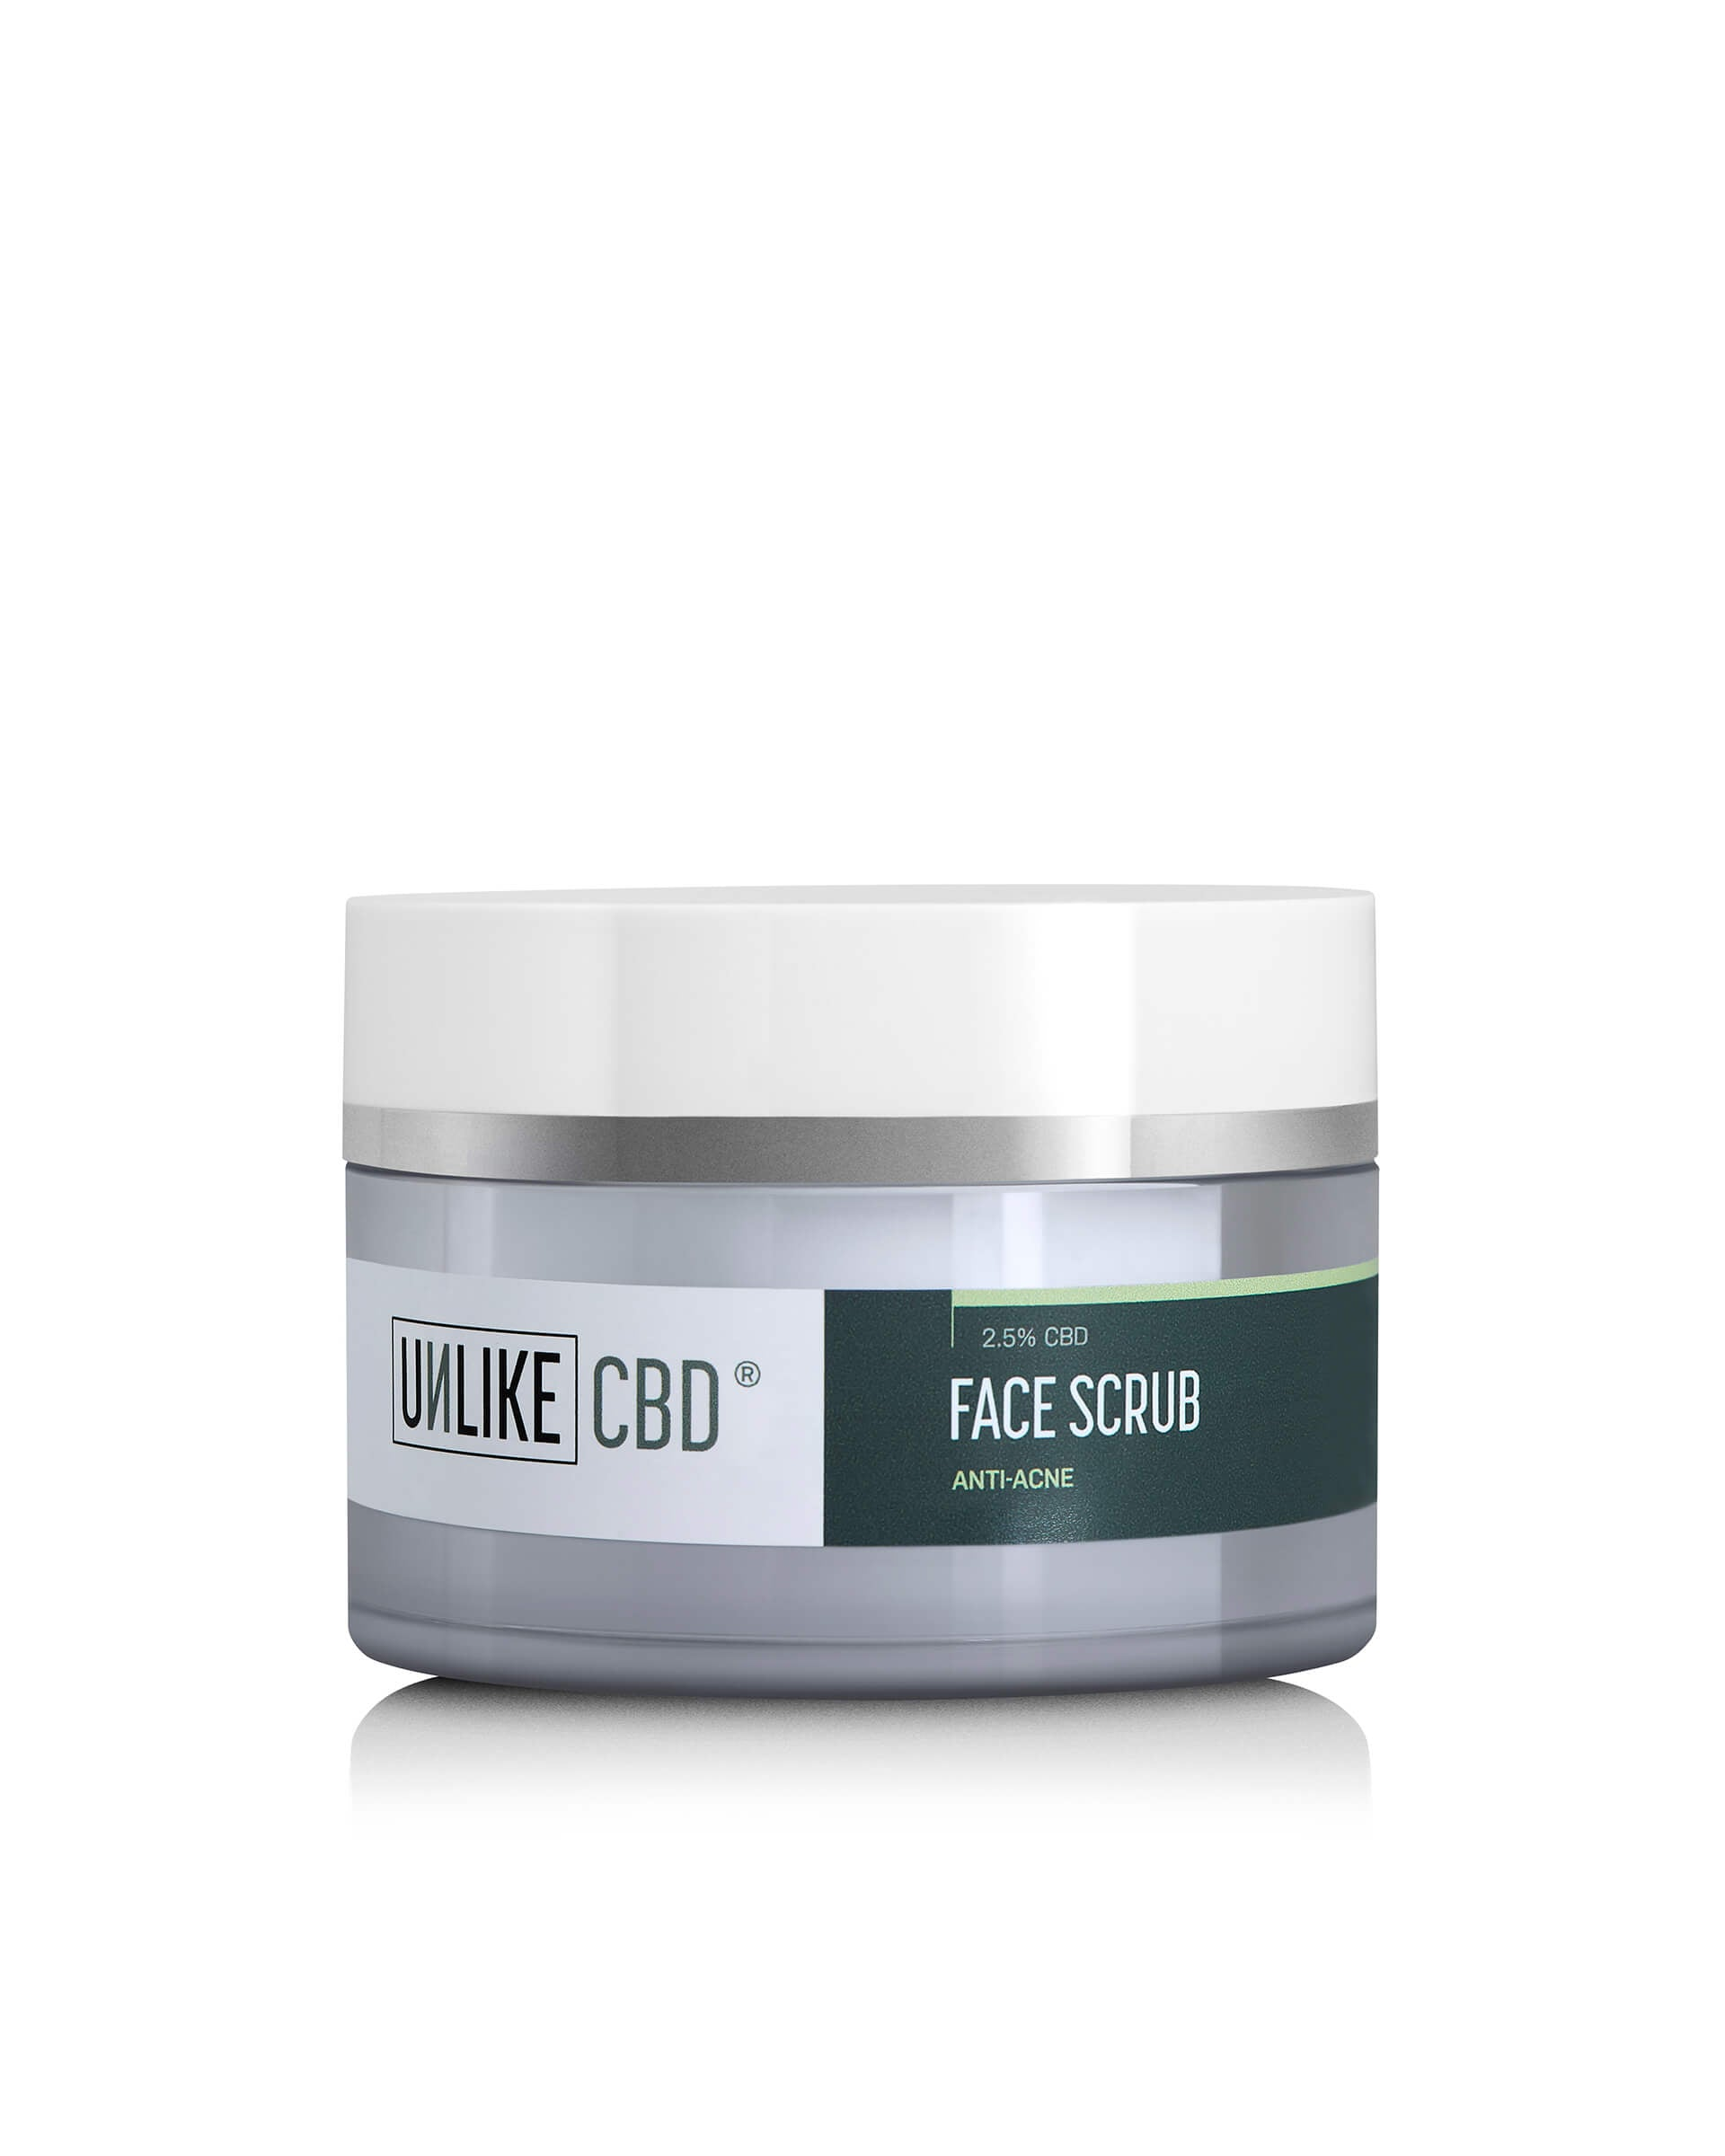 Face Scrub (2.5%, 1250mg CBD) | 50ml